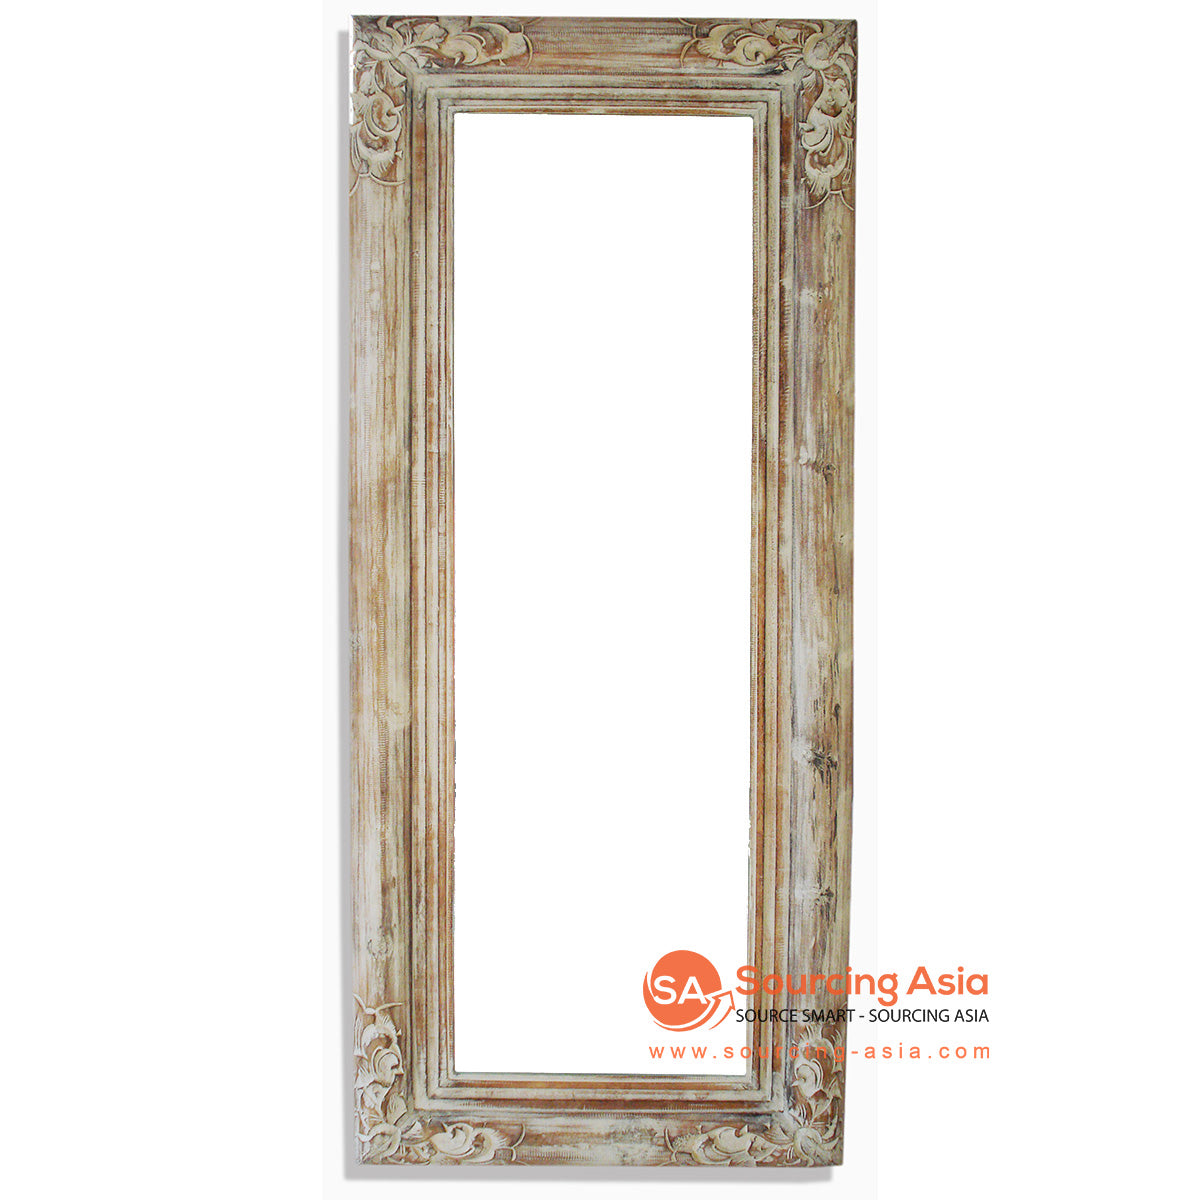 SSU006-DC WOODEN MIRROR